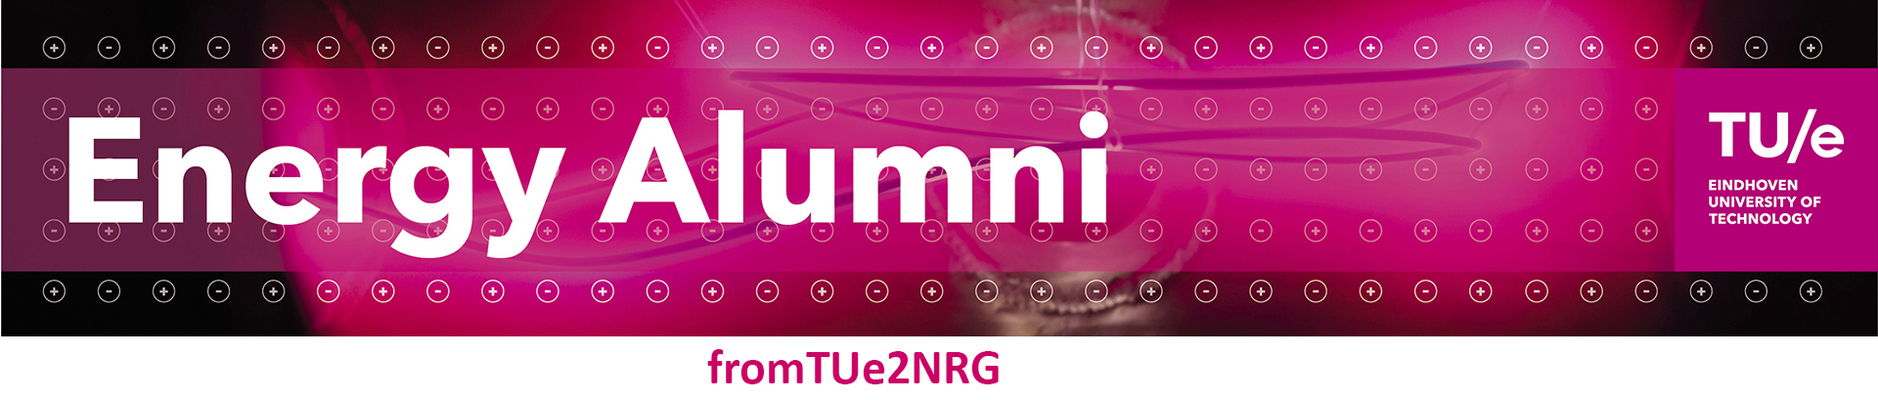 fromTUe2NRG - Energy Alumni Event 2020